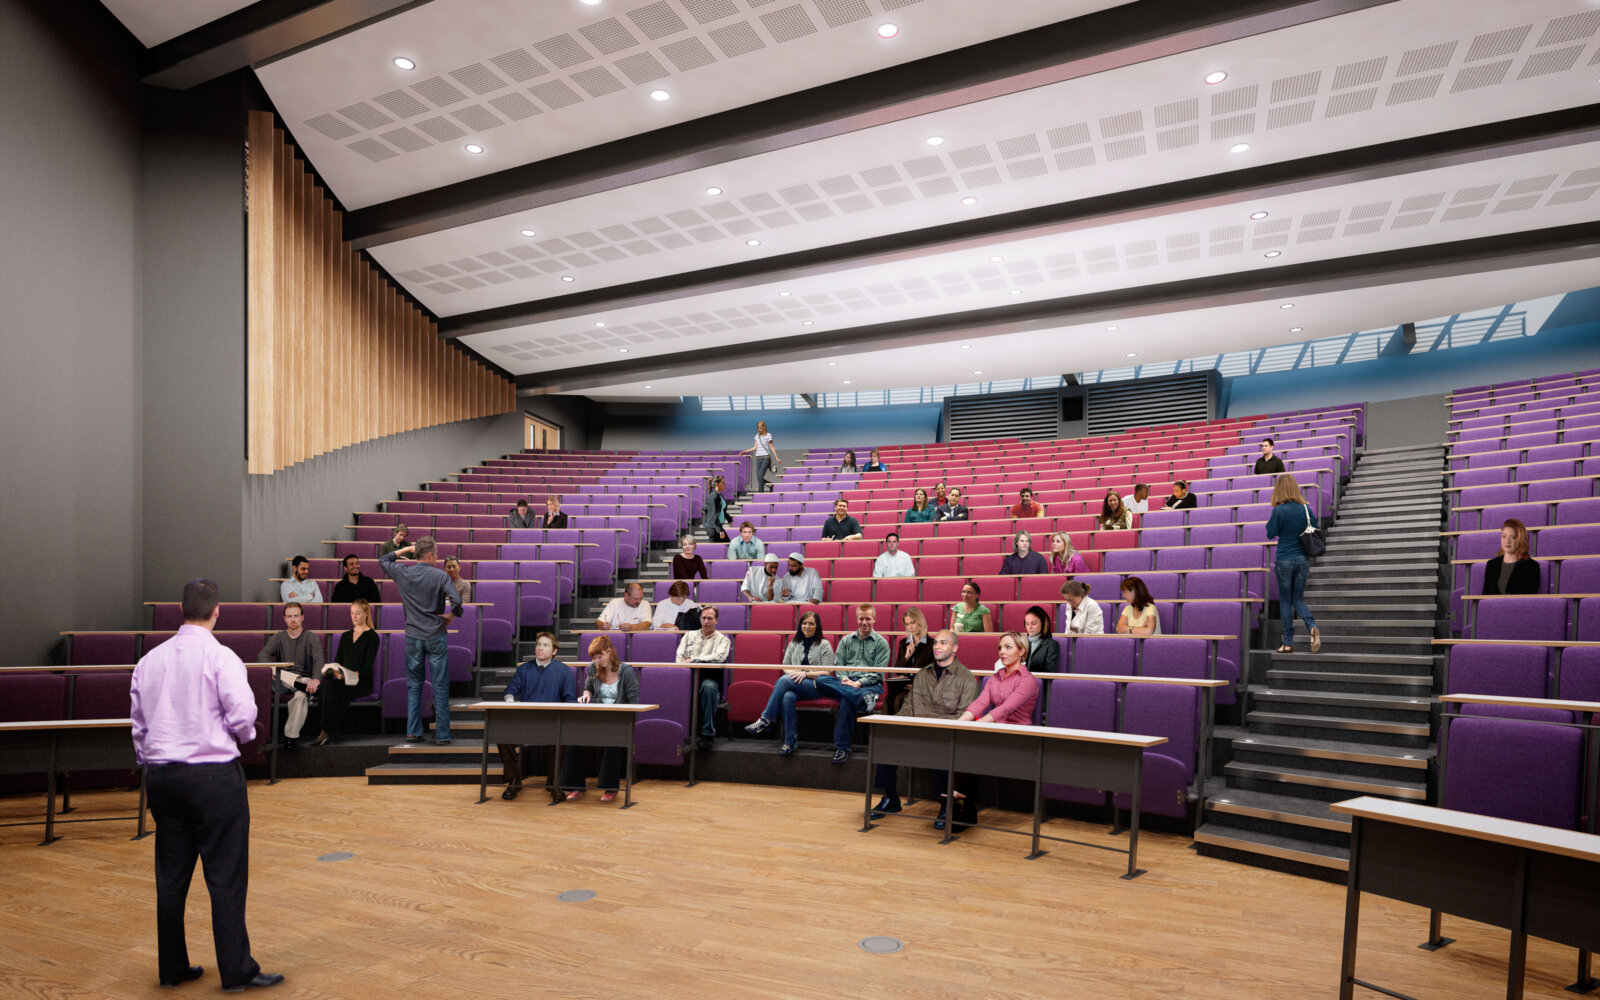 University of Sussex lecture theatre